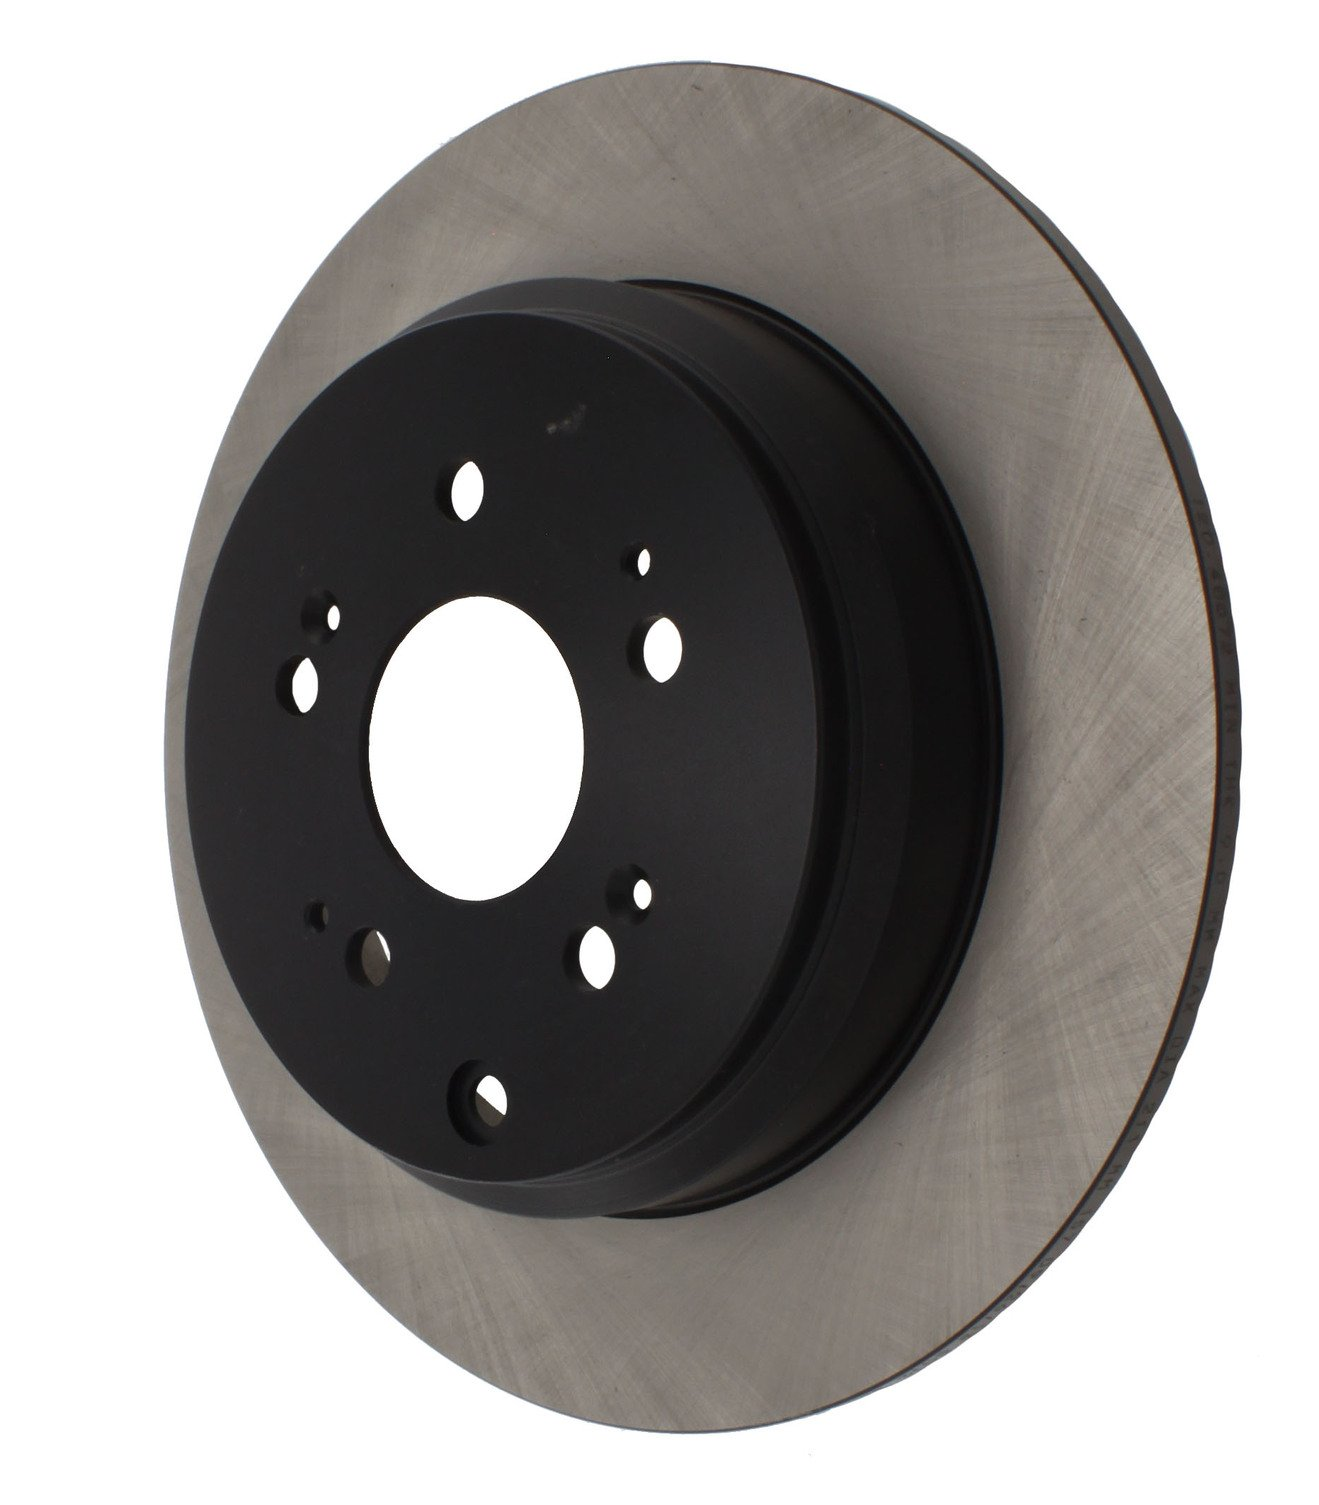 Details about  /For 2015-2019 Honda Odyssey Brake Rotor Front Raybestos 27644YD 2018 2016 2017